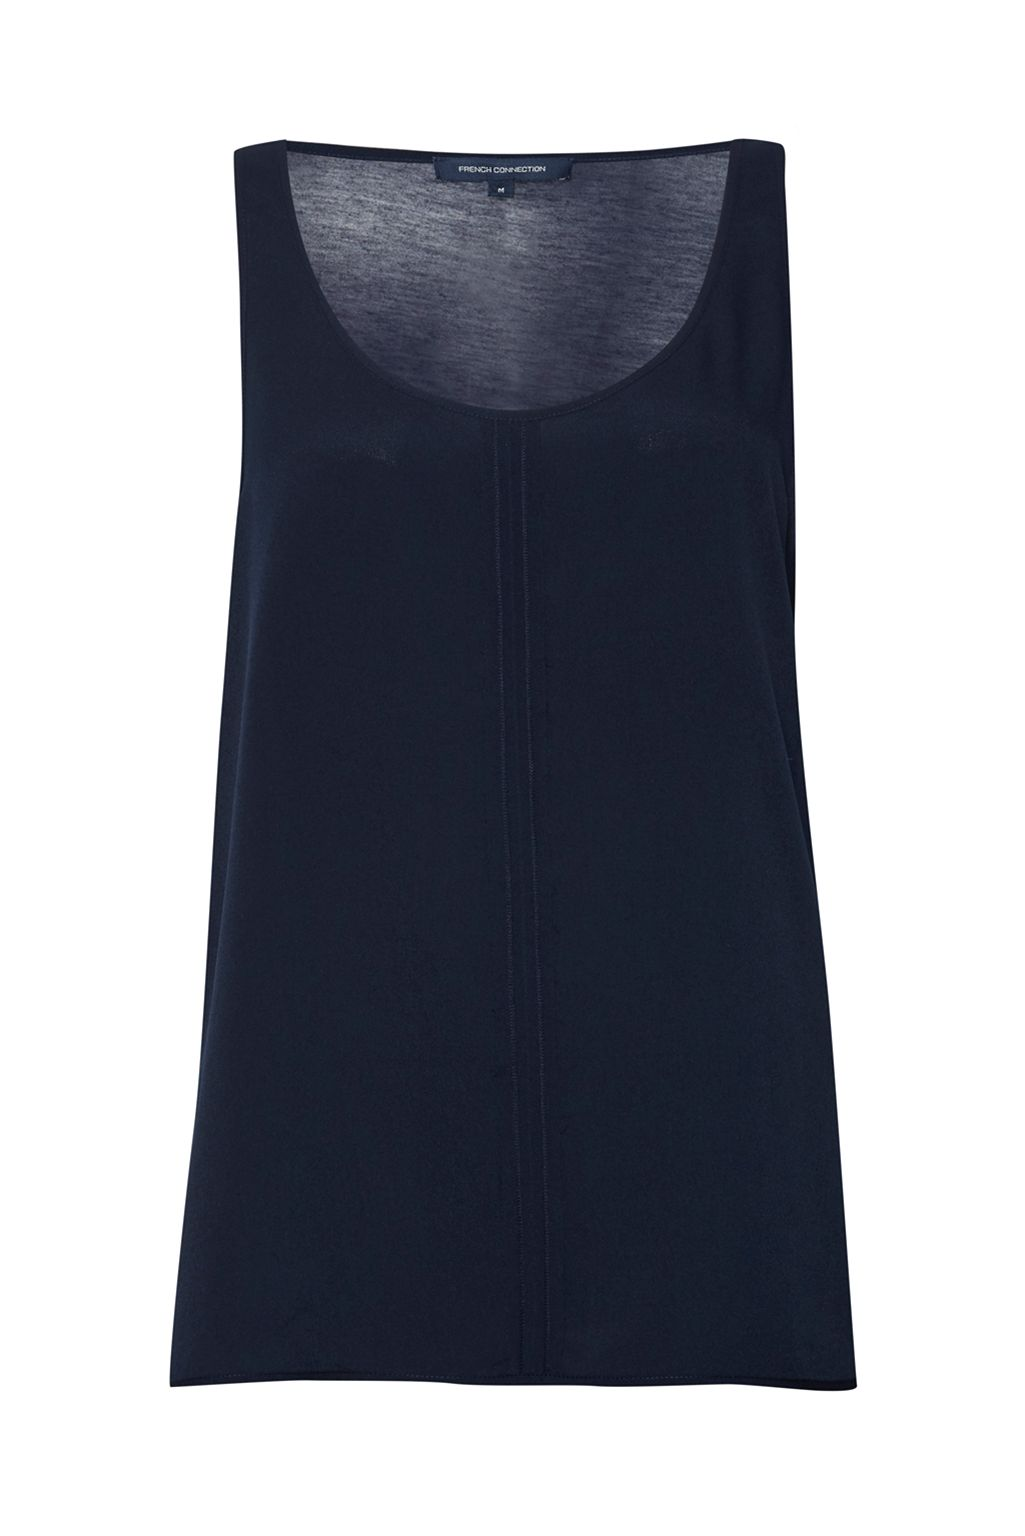 French Connection Clee Crepe Light Vest Top, Blue